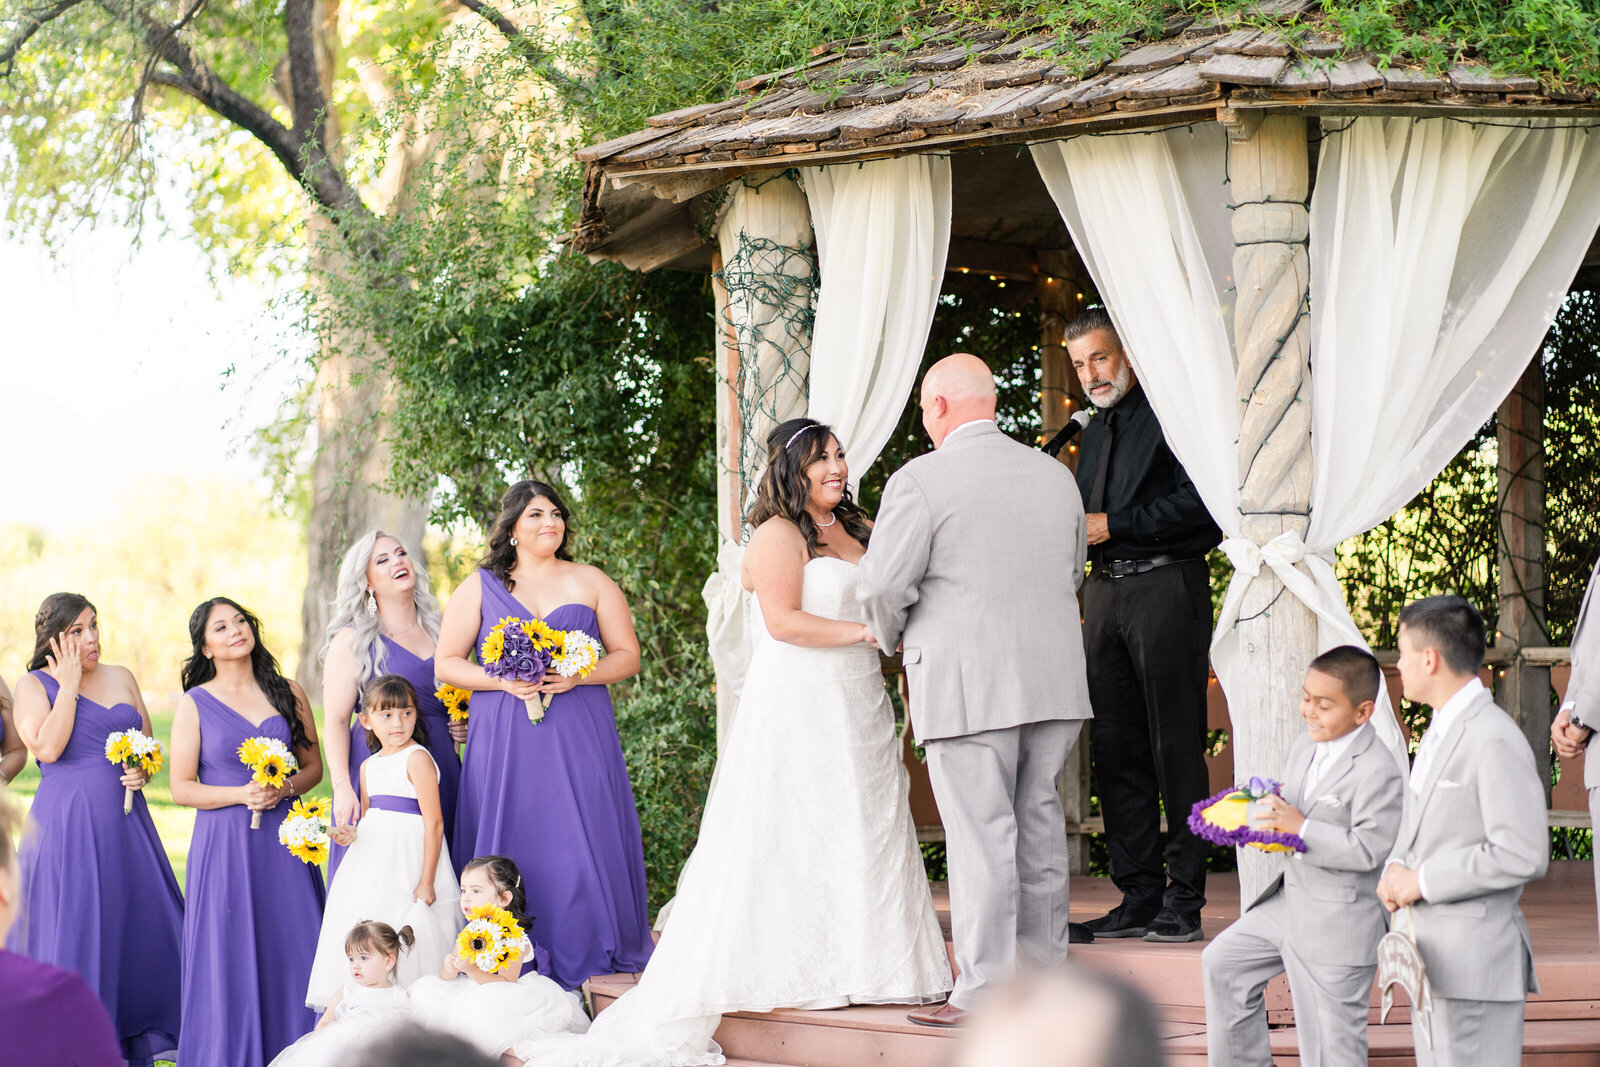 colorful-wedding-at-La-Mariposa-Resort-Tucson-Christy-Hunter-Photography-004